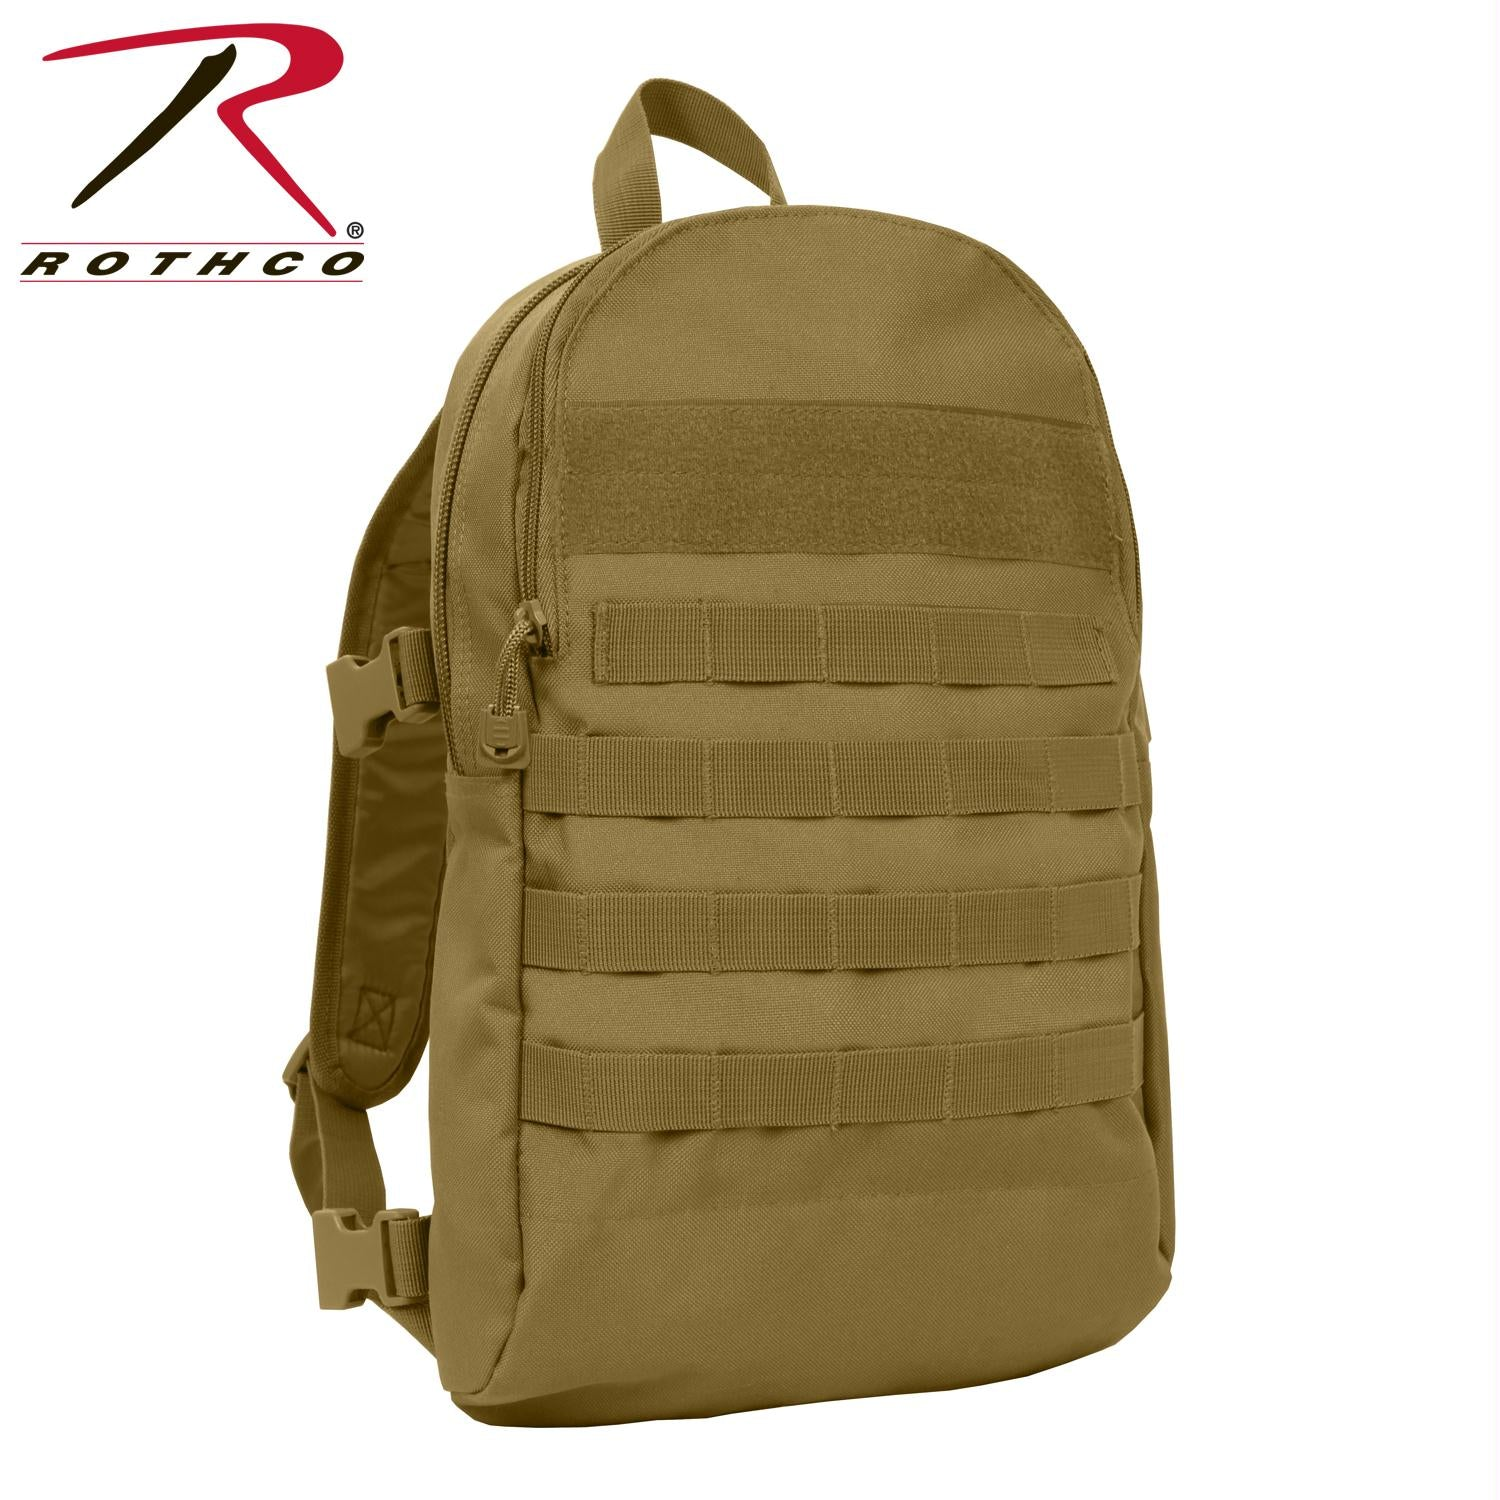 Rothco Backup Connectable Back Pack - Coyote Brown